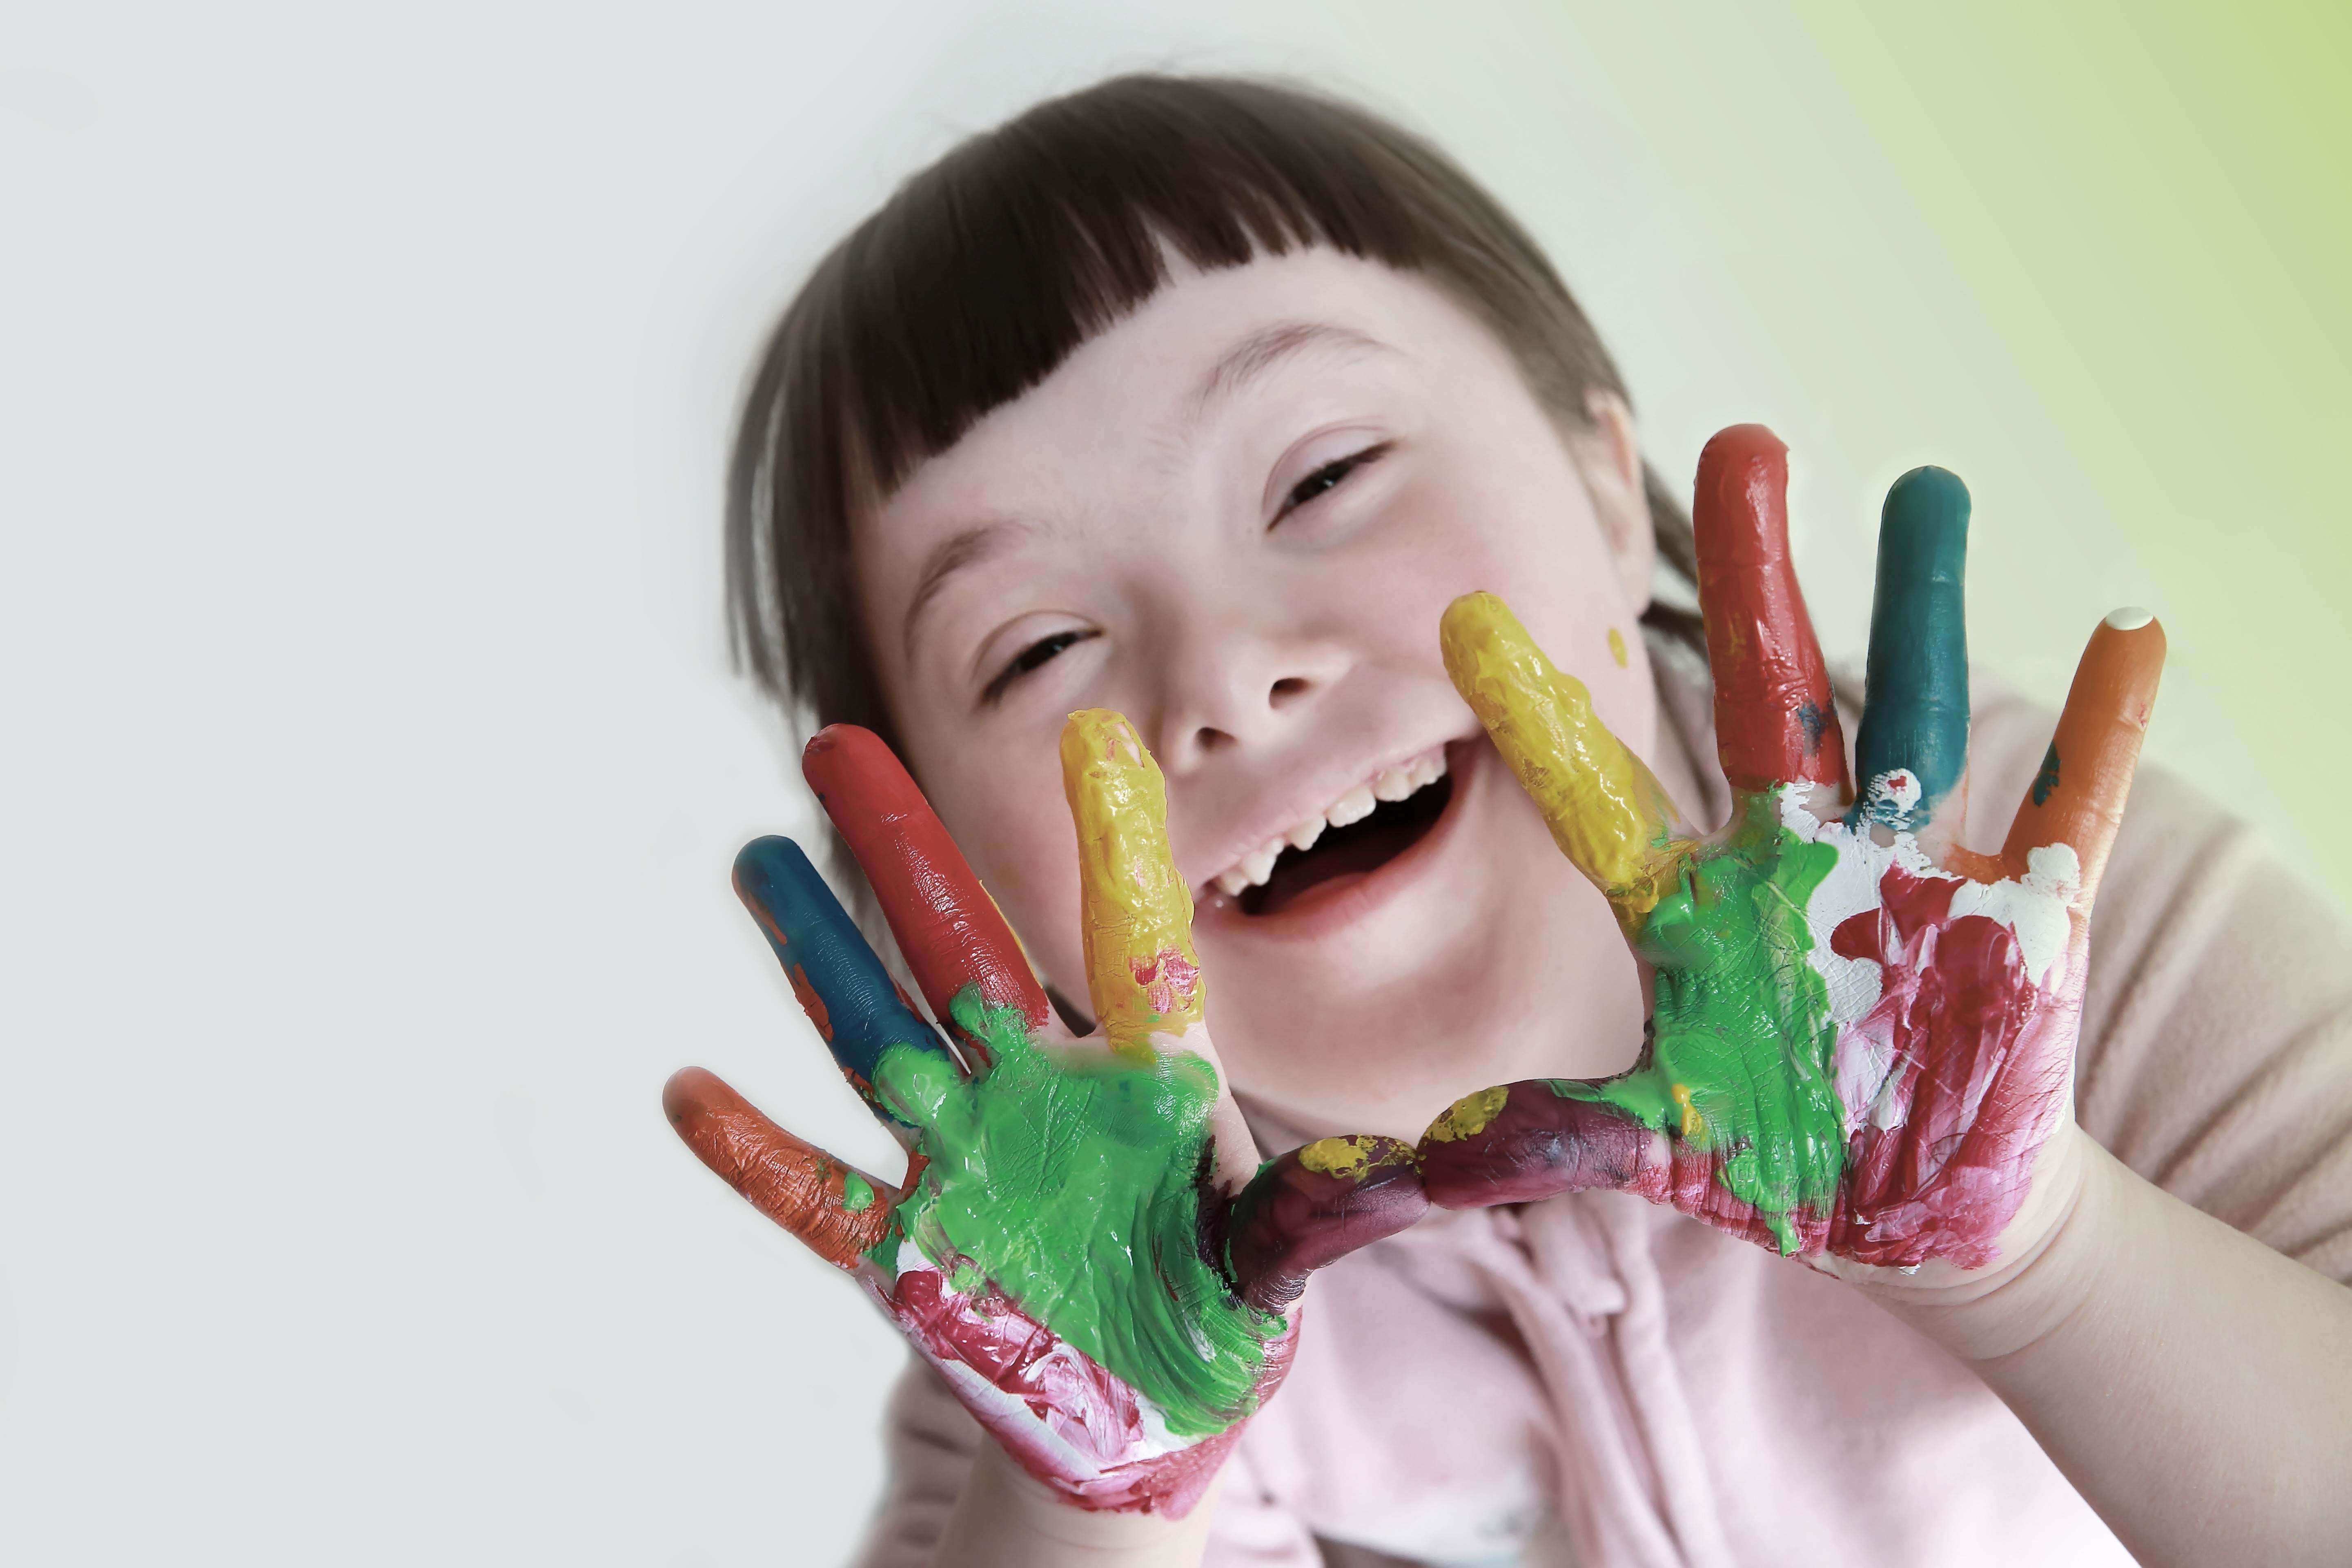 happy child with paint on hands smiling